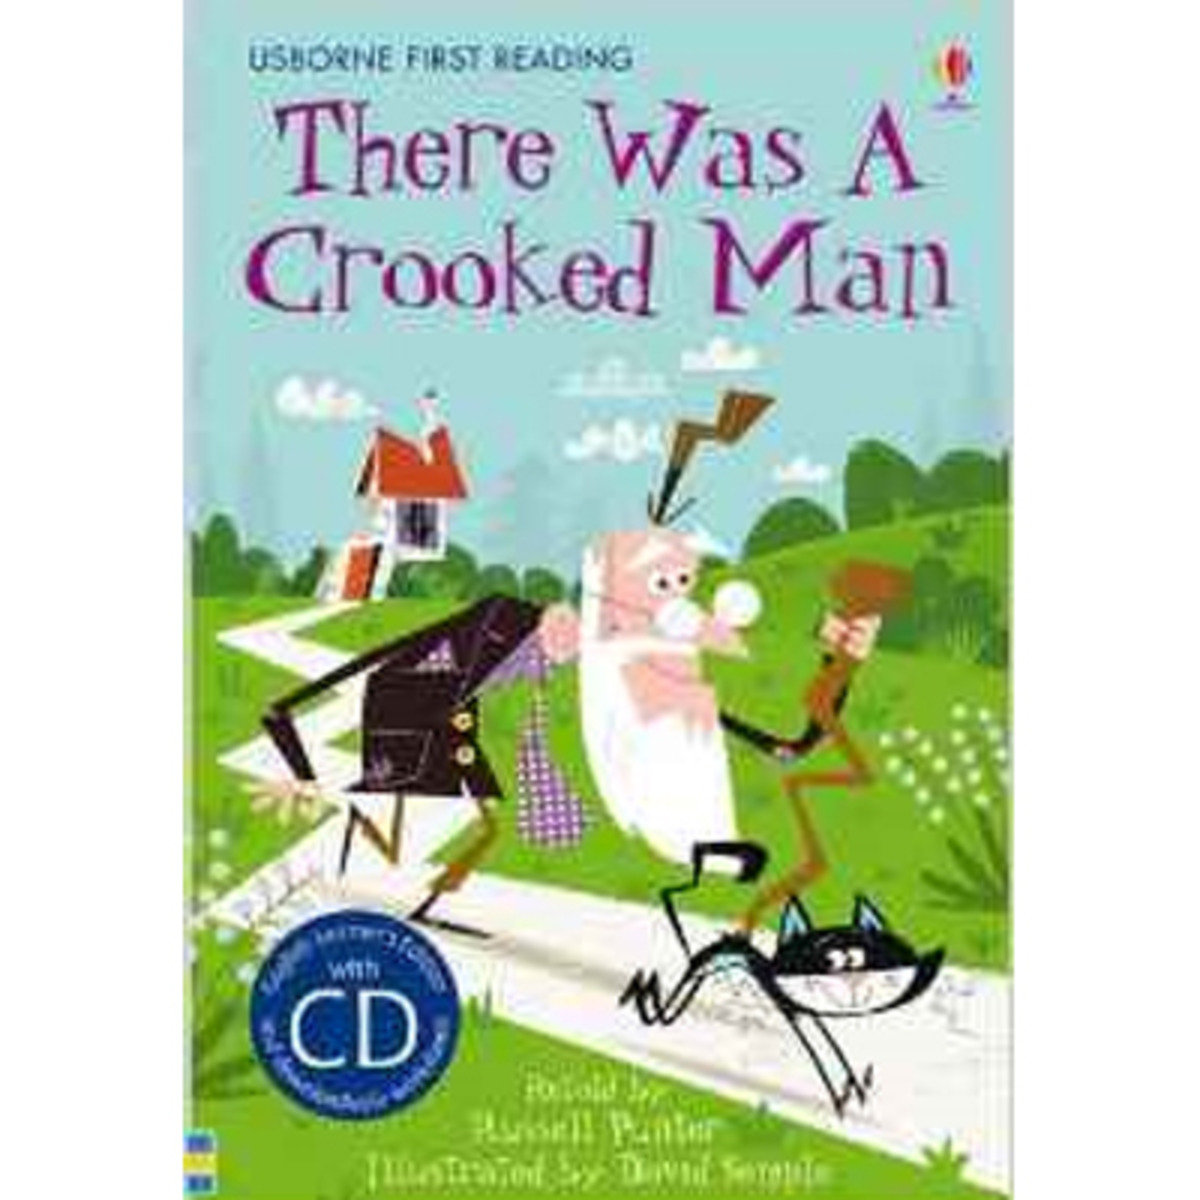 There Was a Crooked Man - First Reading with CD